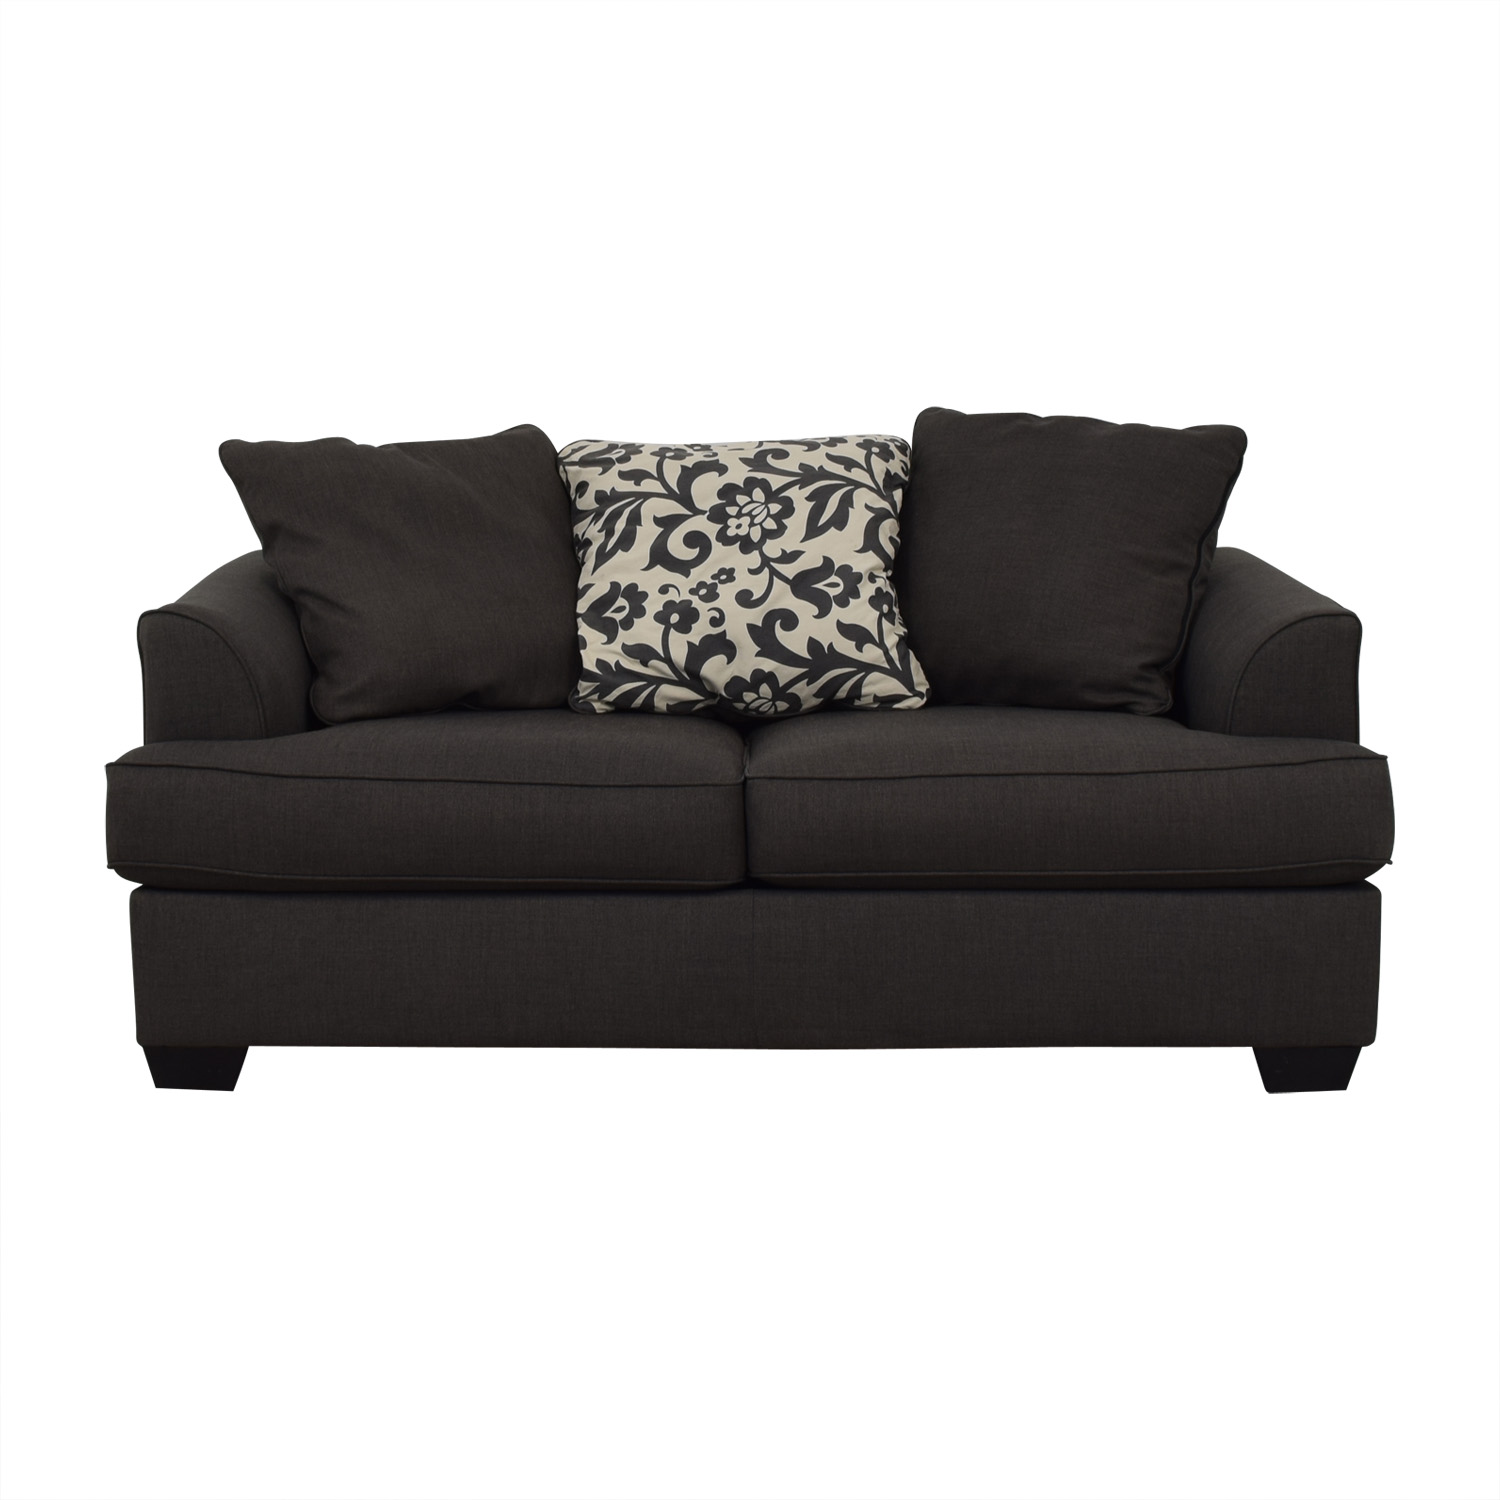 58 Off Ashley Furniture Ashley Furniture Dark Grey Sofa